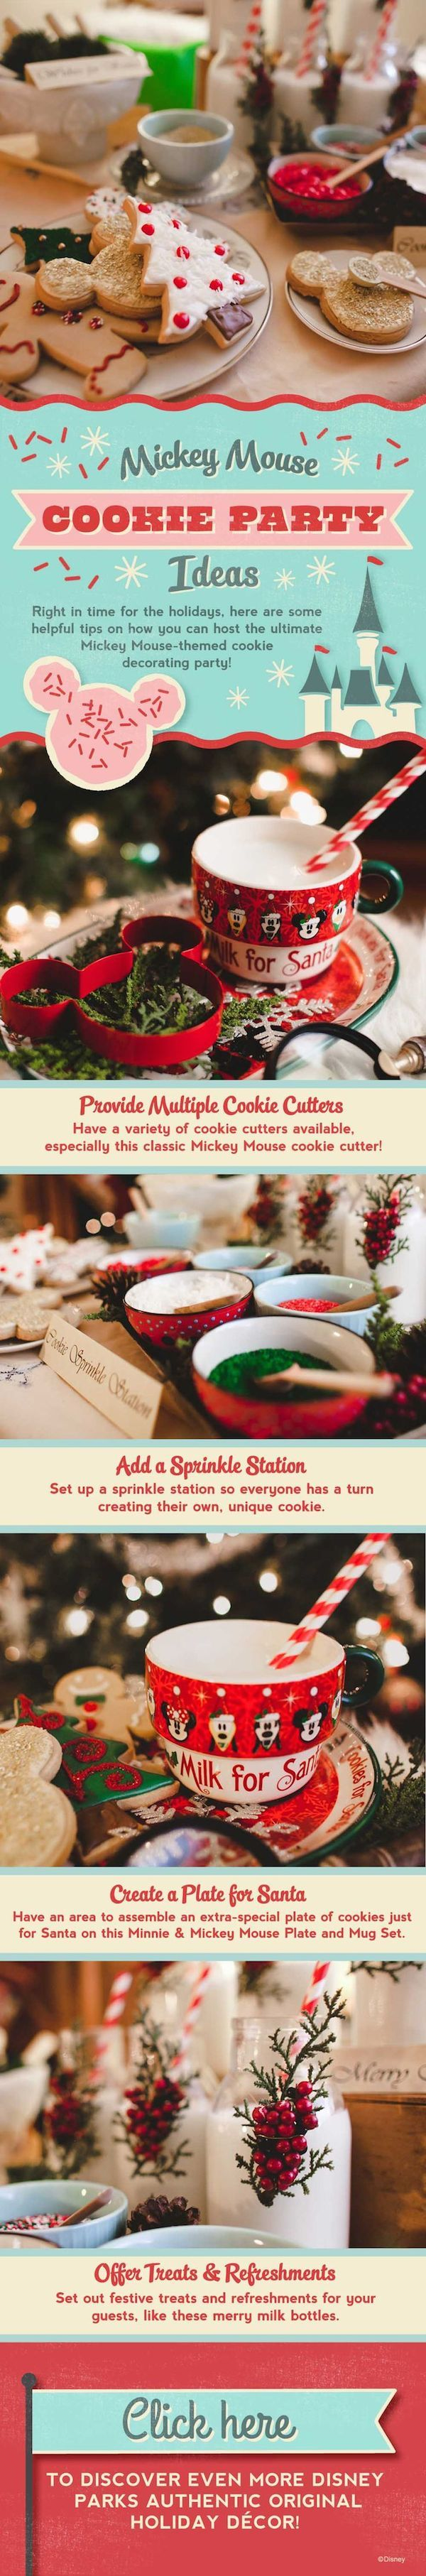 Cookie decorating party ideas - Holiday How To Throw A Disney Cookie Decorating Party